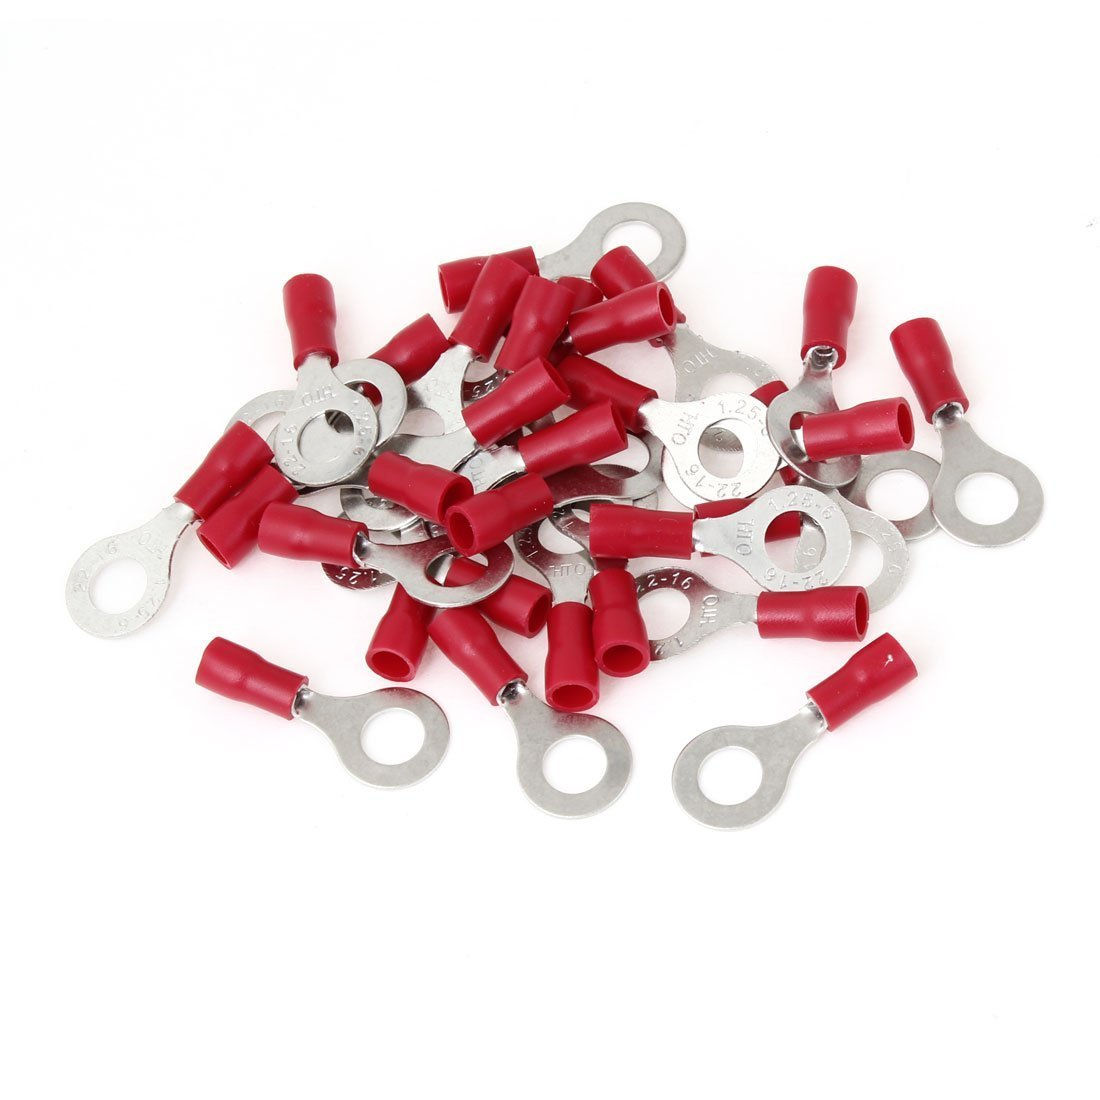 RV1.25-6 Red PVC Sleeve Insulated Ring Tongue Terminals 30 Pcs a13051500ux0669